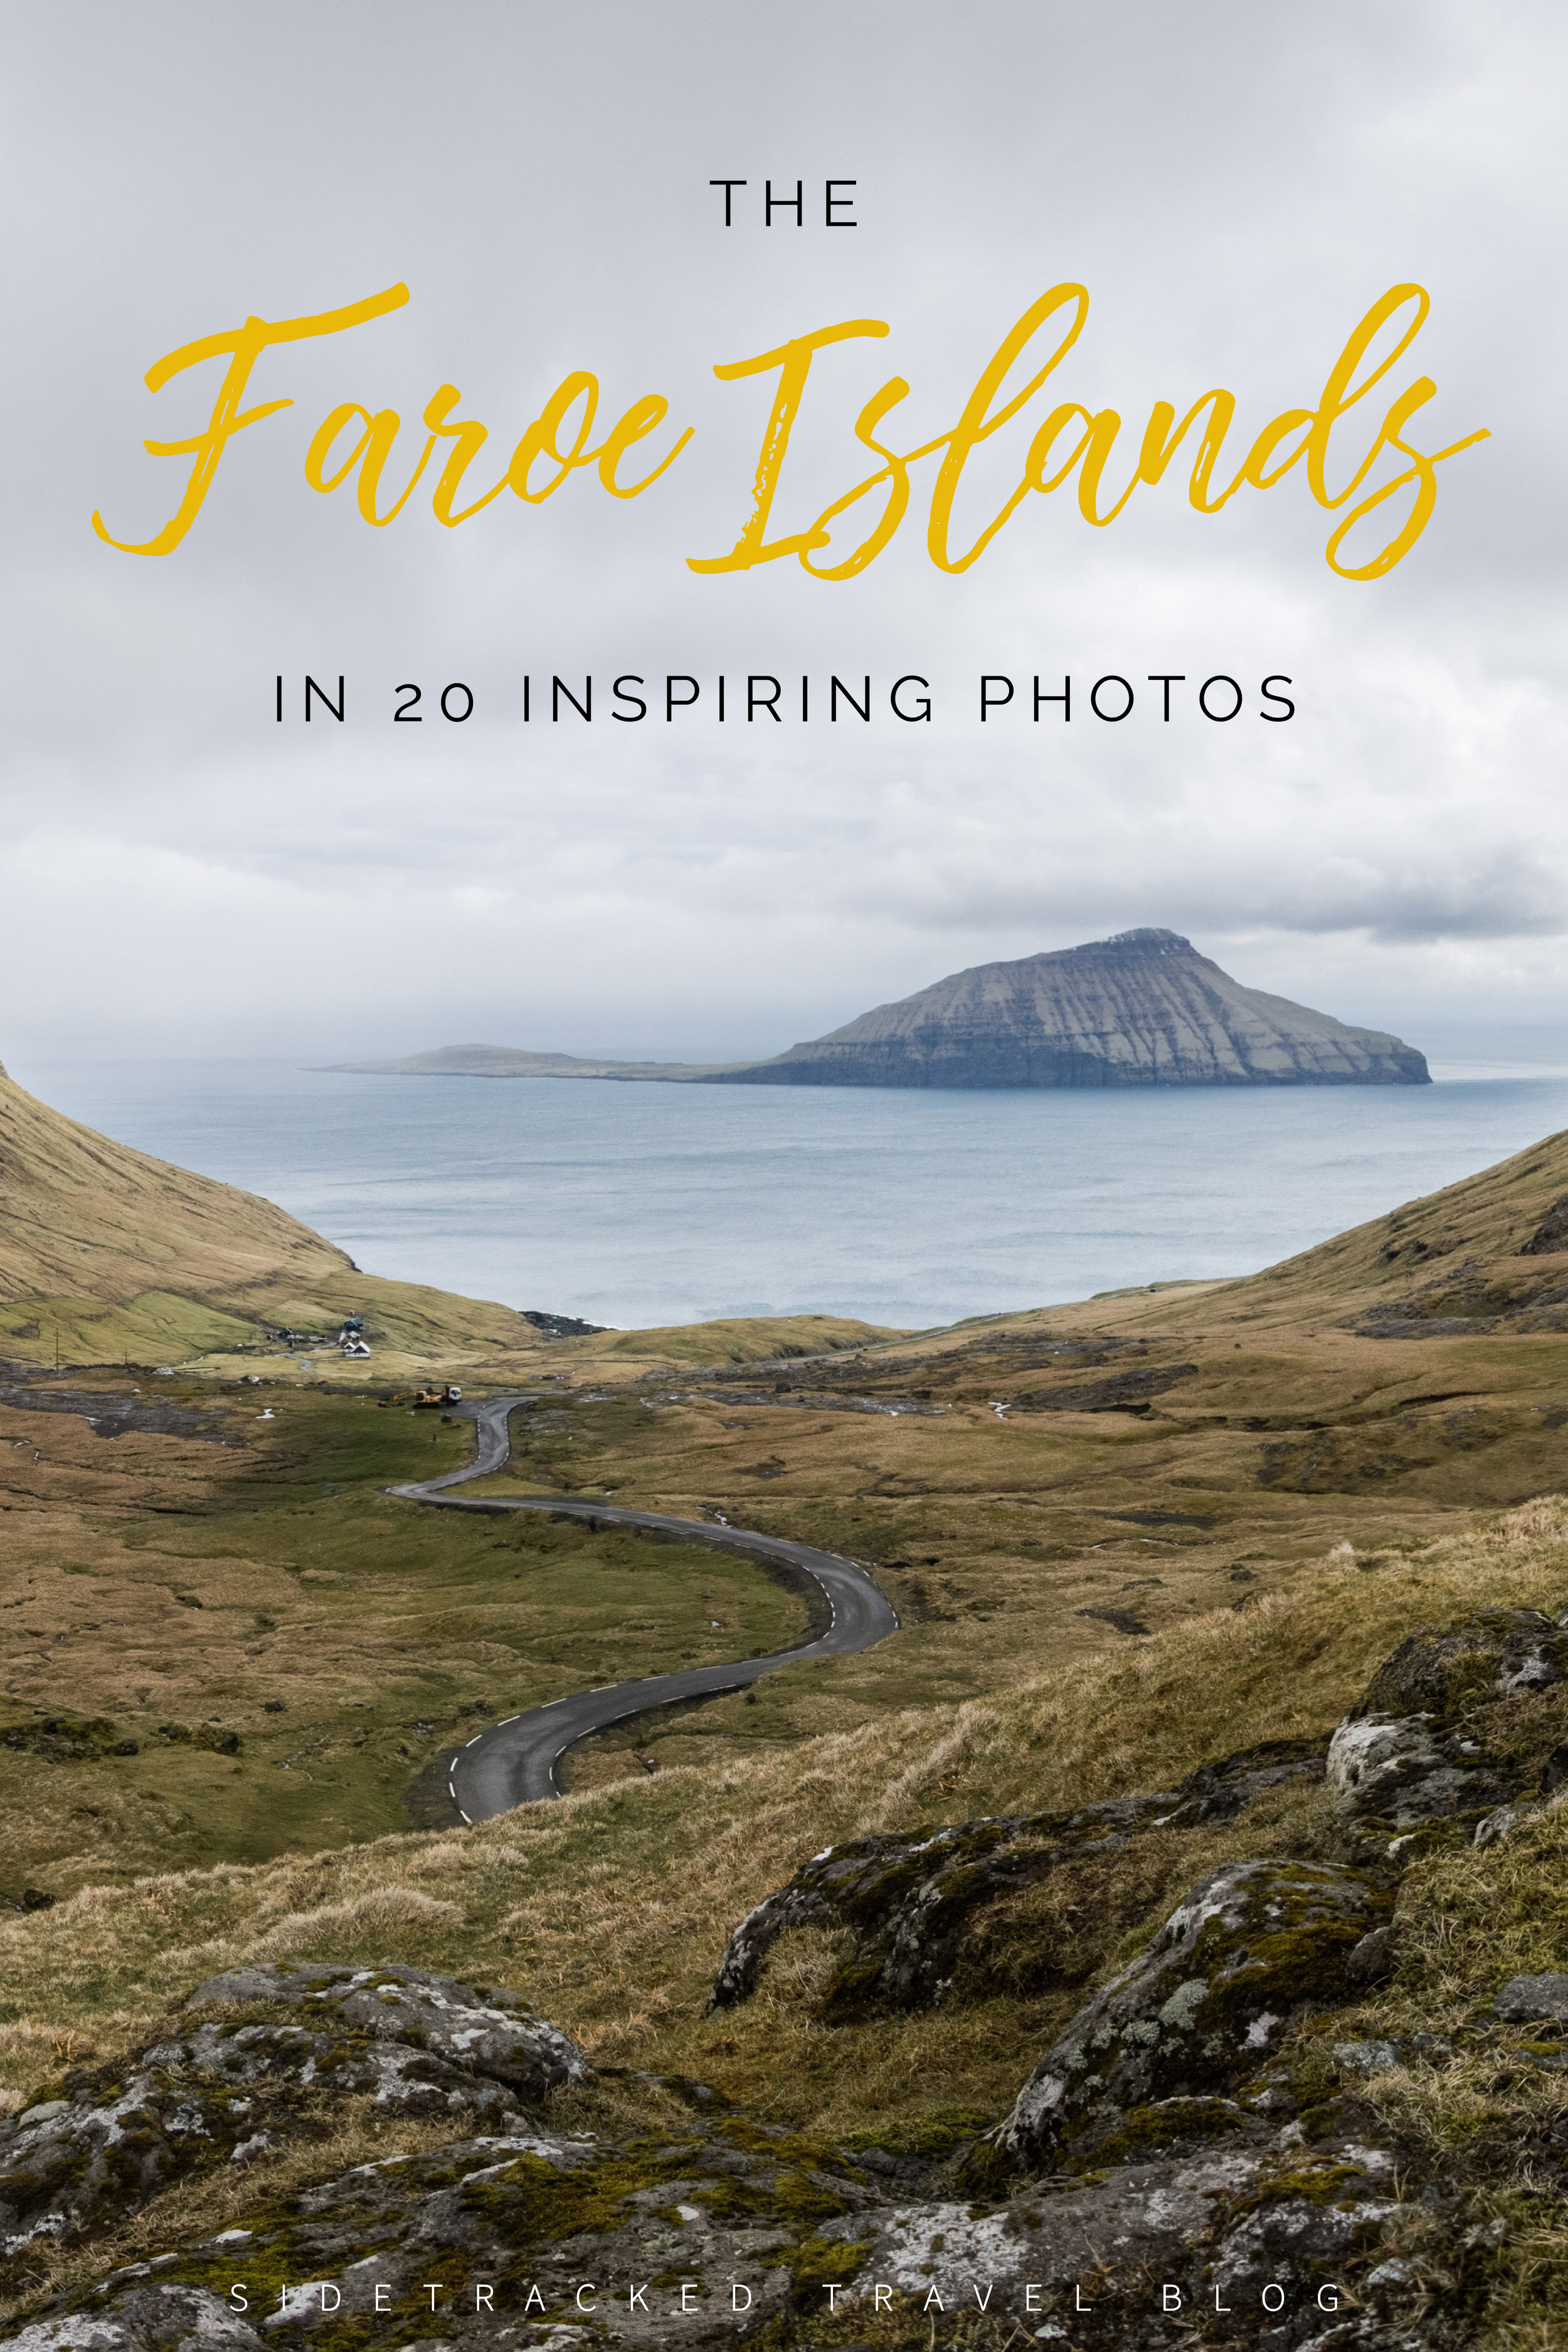 Remaining one of the last wild frontiers, the Faroe Islands are largely undiscovered and untarnished by mass tourism. Here are 20 photos to inspire you to visit the Faroe Islands!